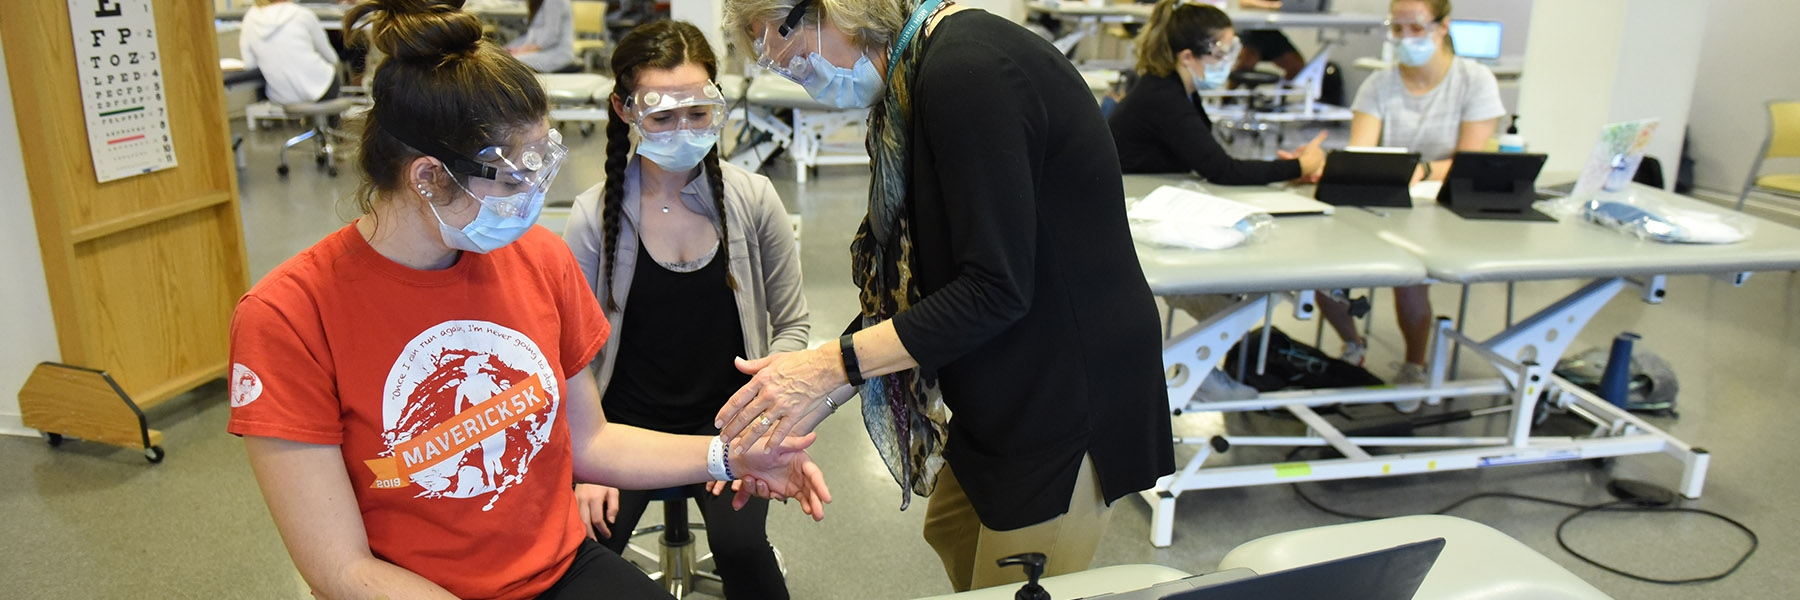 Professor assists two sitting female students who are working on arm movement. They all wear facemasks and goggles.